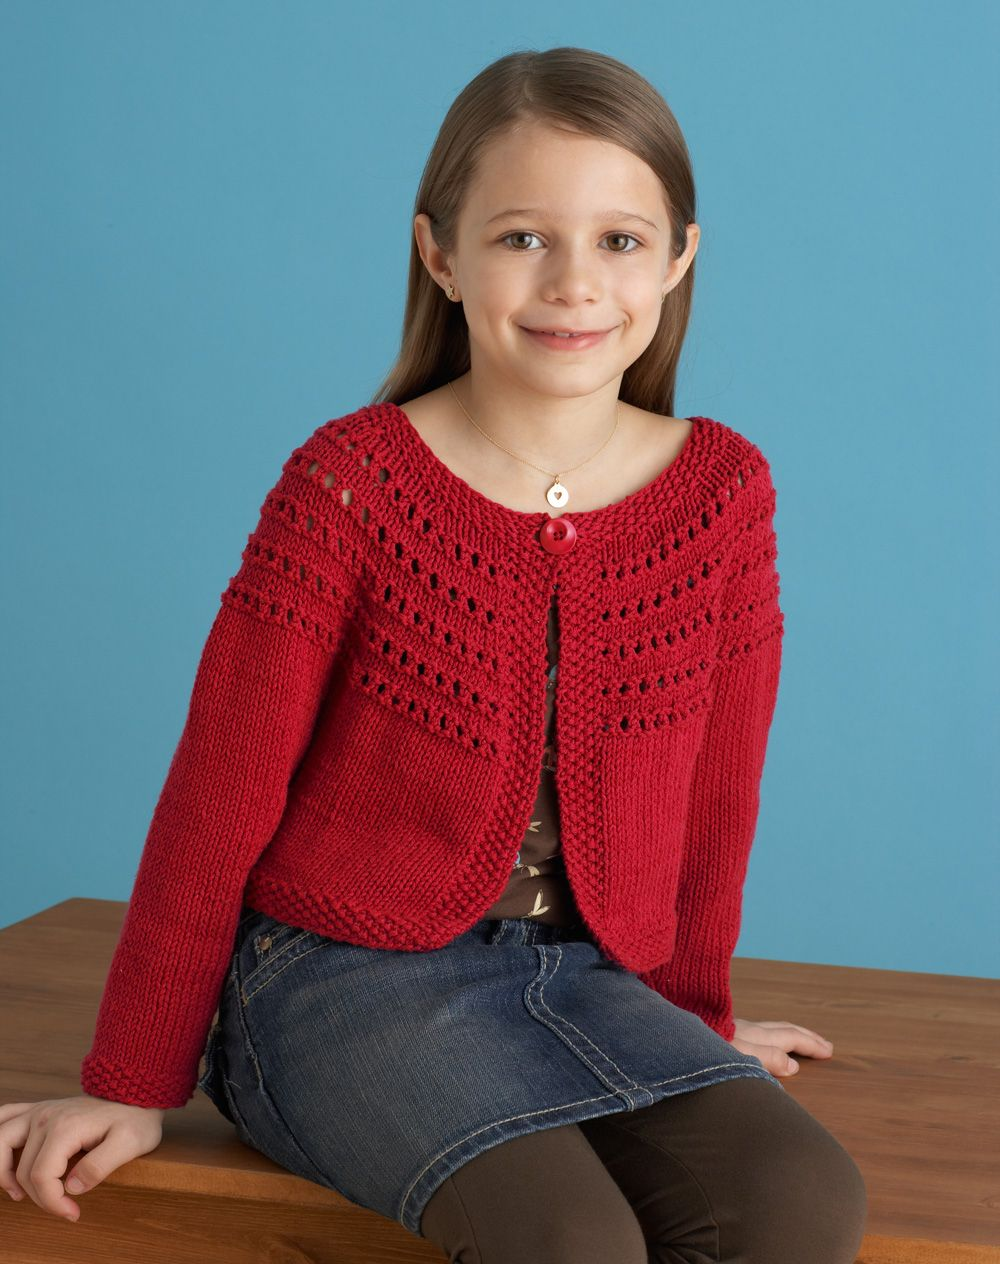 15 Sweaters, Hoodies, and Dresses for Kids, Tweens, and Teens Crochet, Knit...